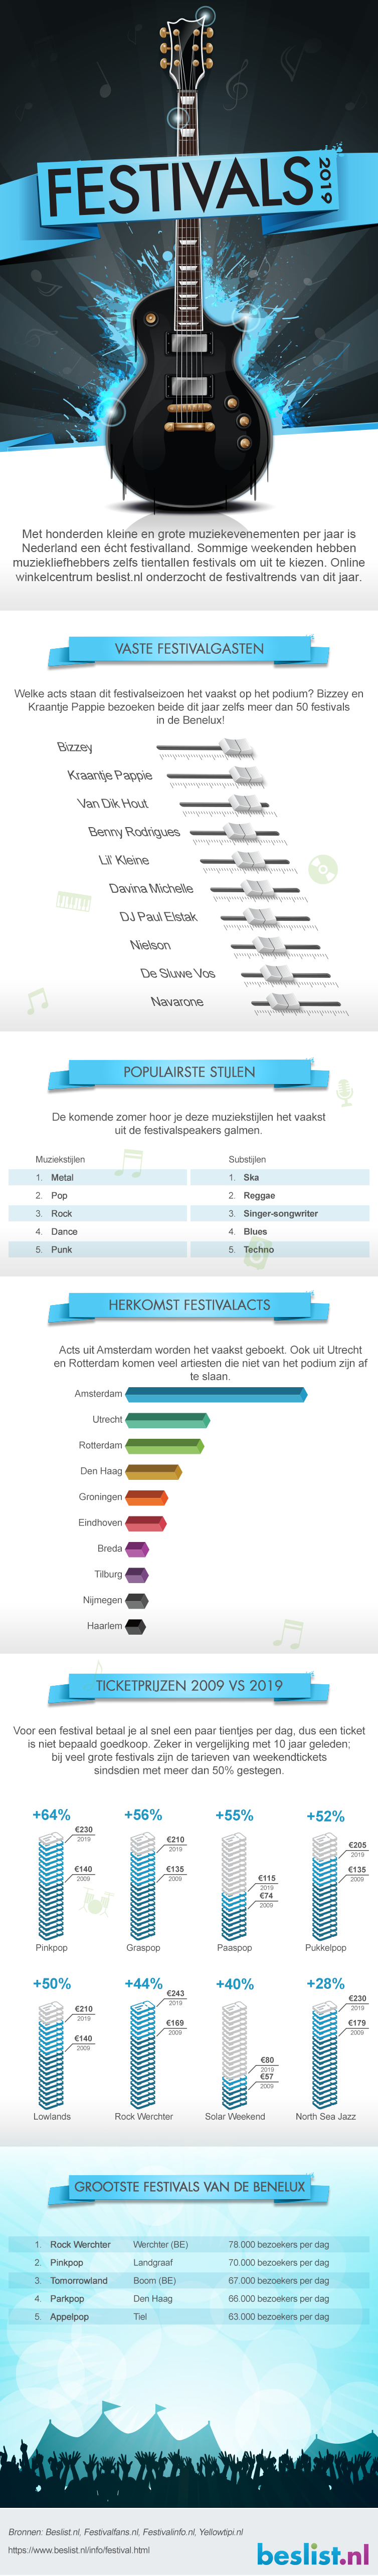 Infographic: Festivaltrends